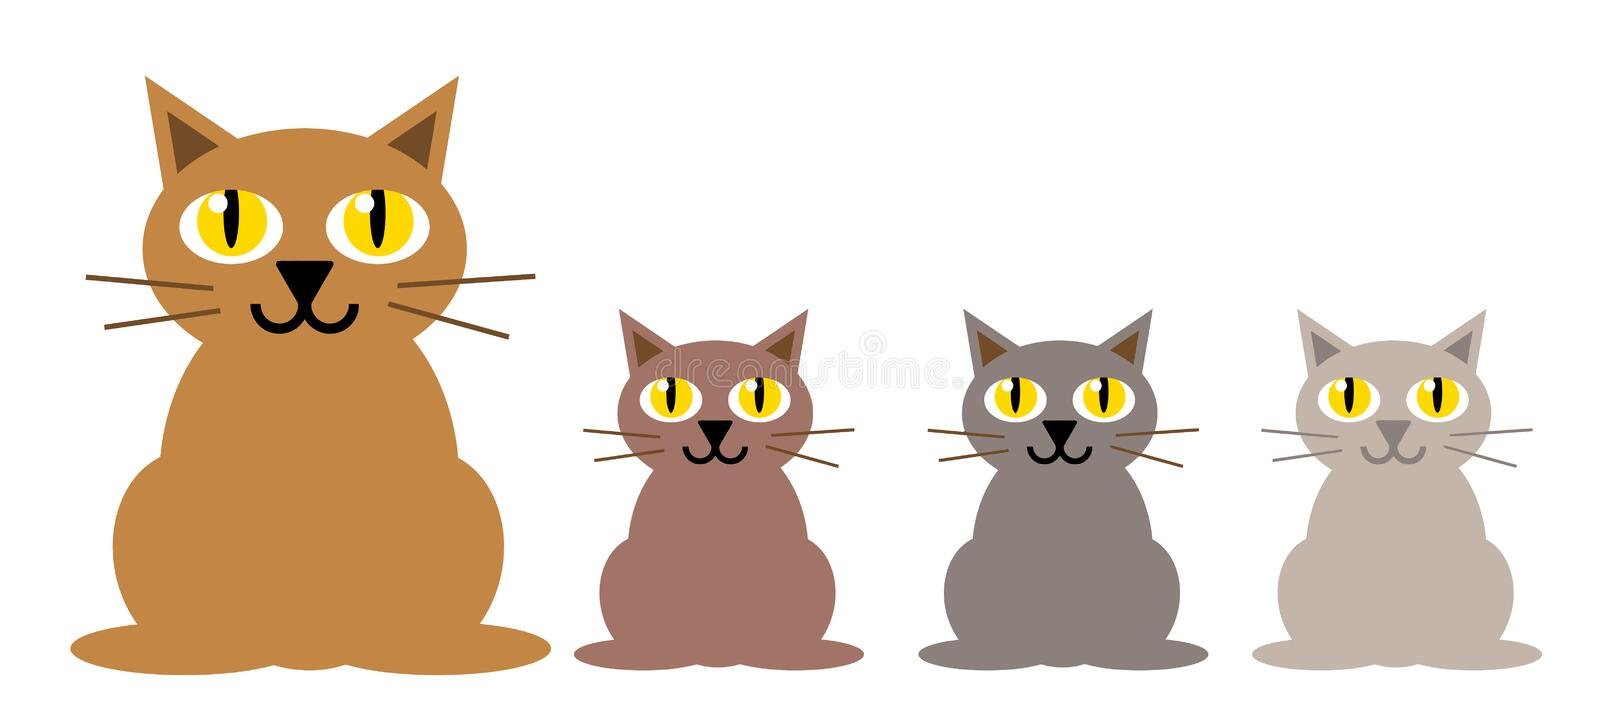 Katten 01 stock illustratie